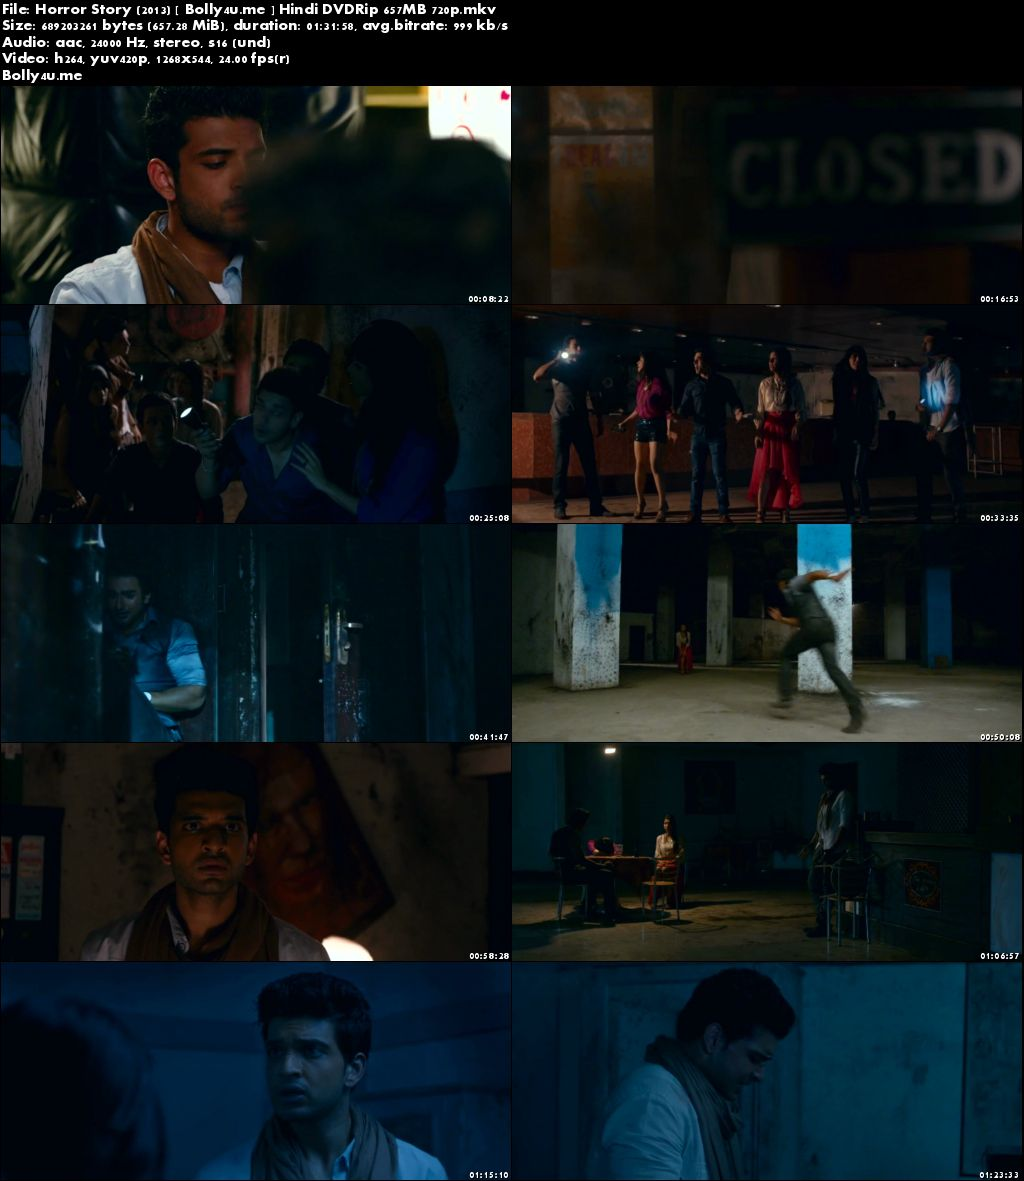 Horror Story 2013 DVDRip 650MB Full Hindi Movie Download 720p